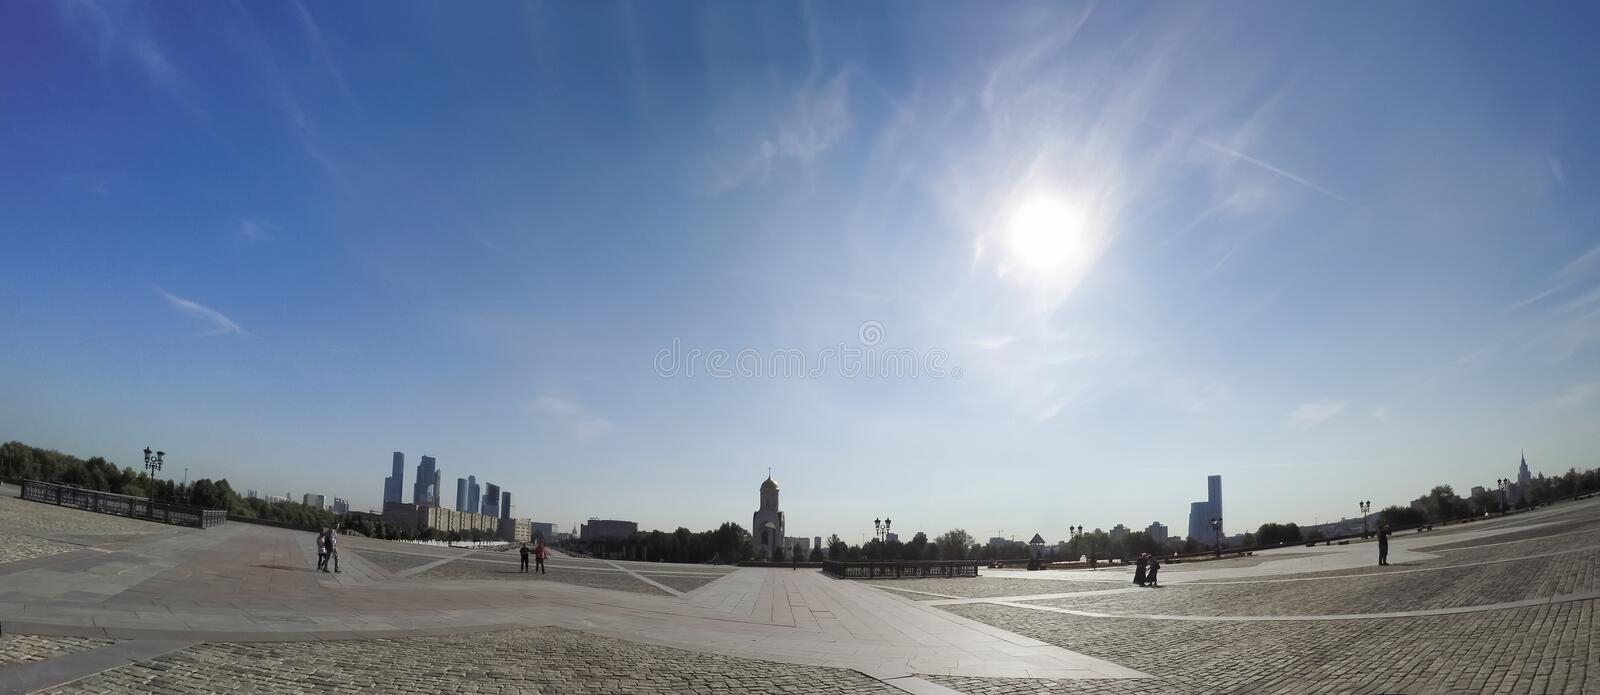 Panorama of War memorial in Victory Park on Poklonnaya Hill, Moscow, Russia royalty free stock photo